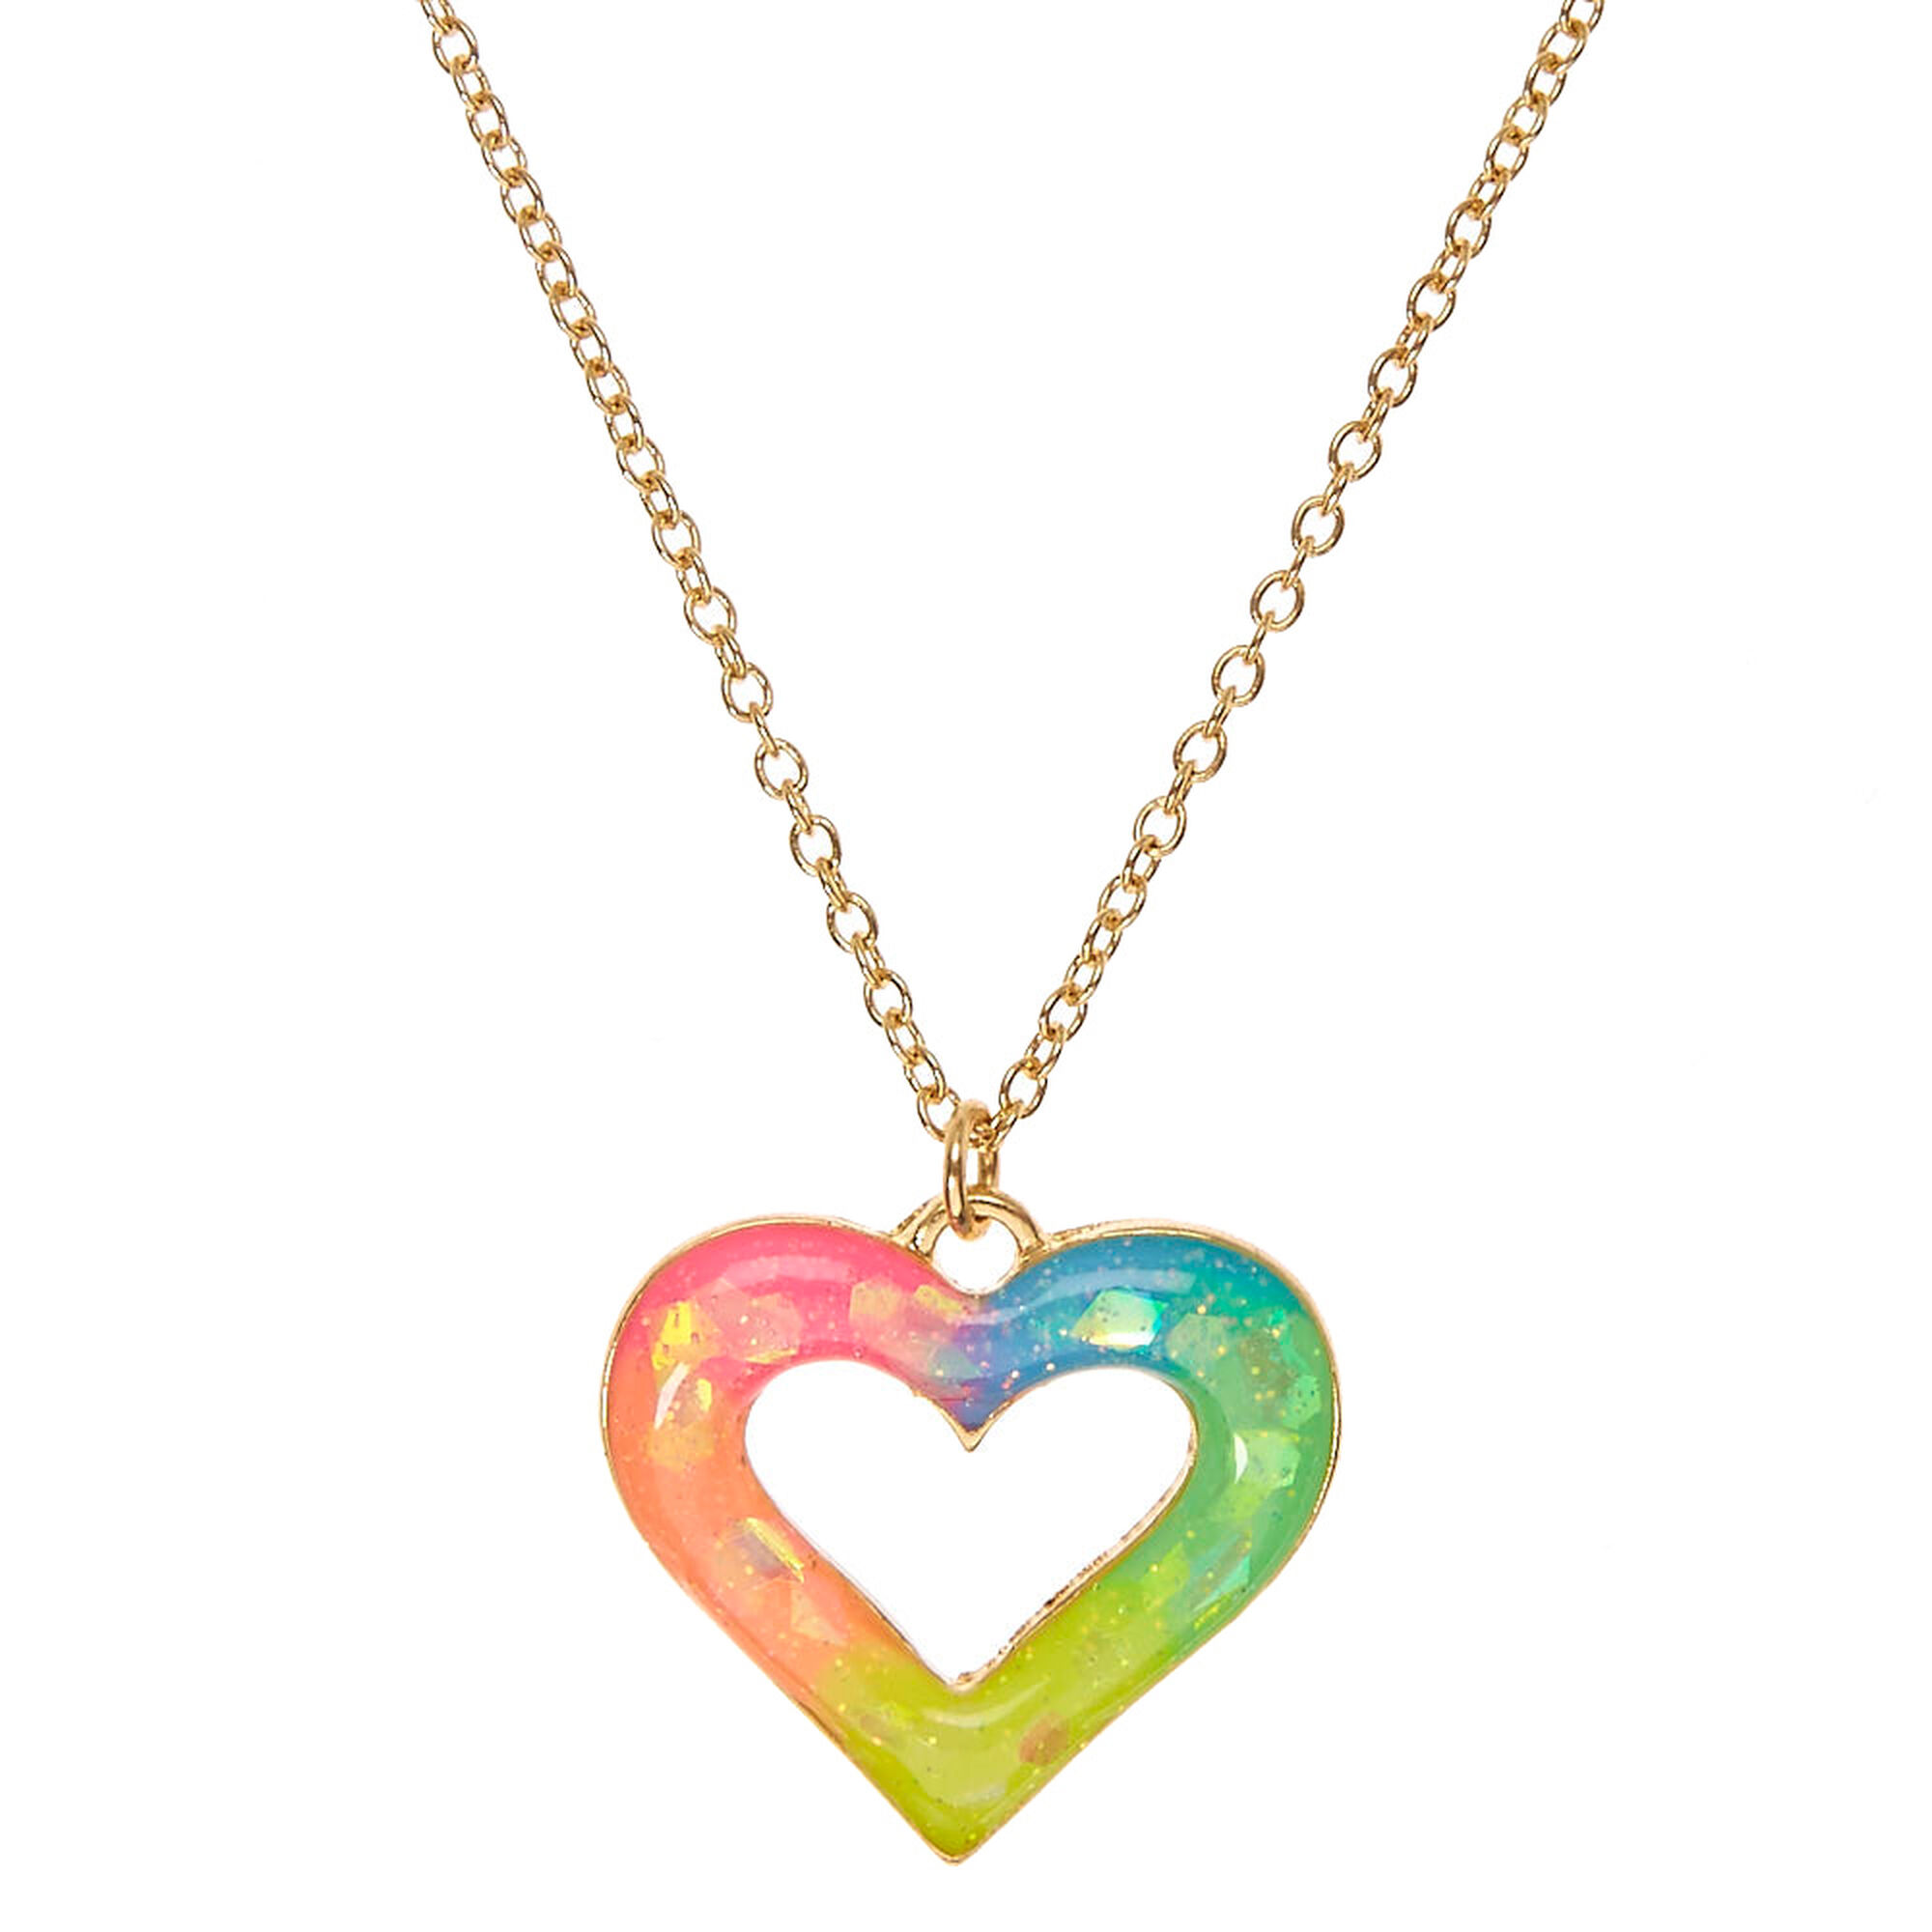 spoken picture jan necklace word heart jewelry pendant product open